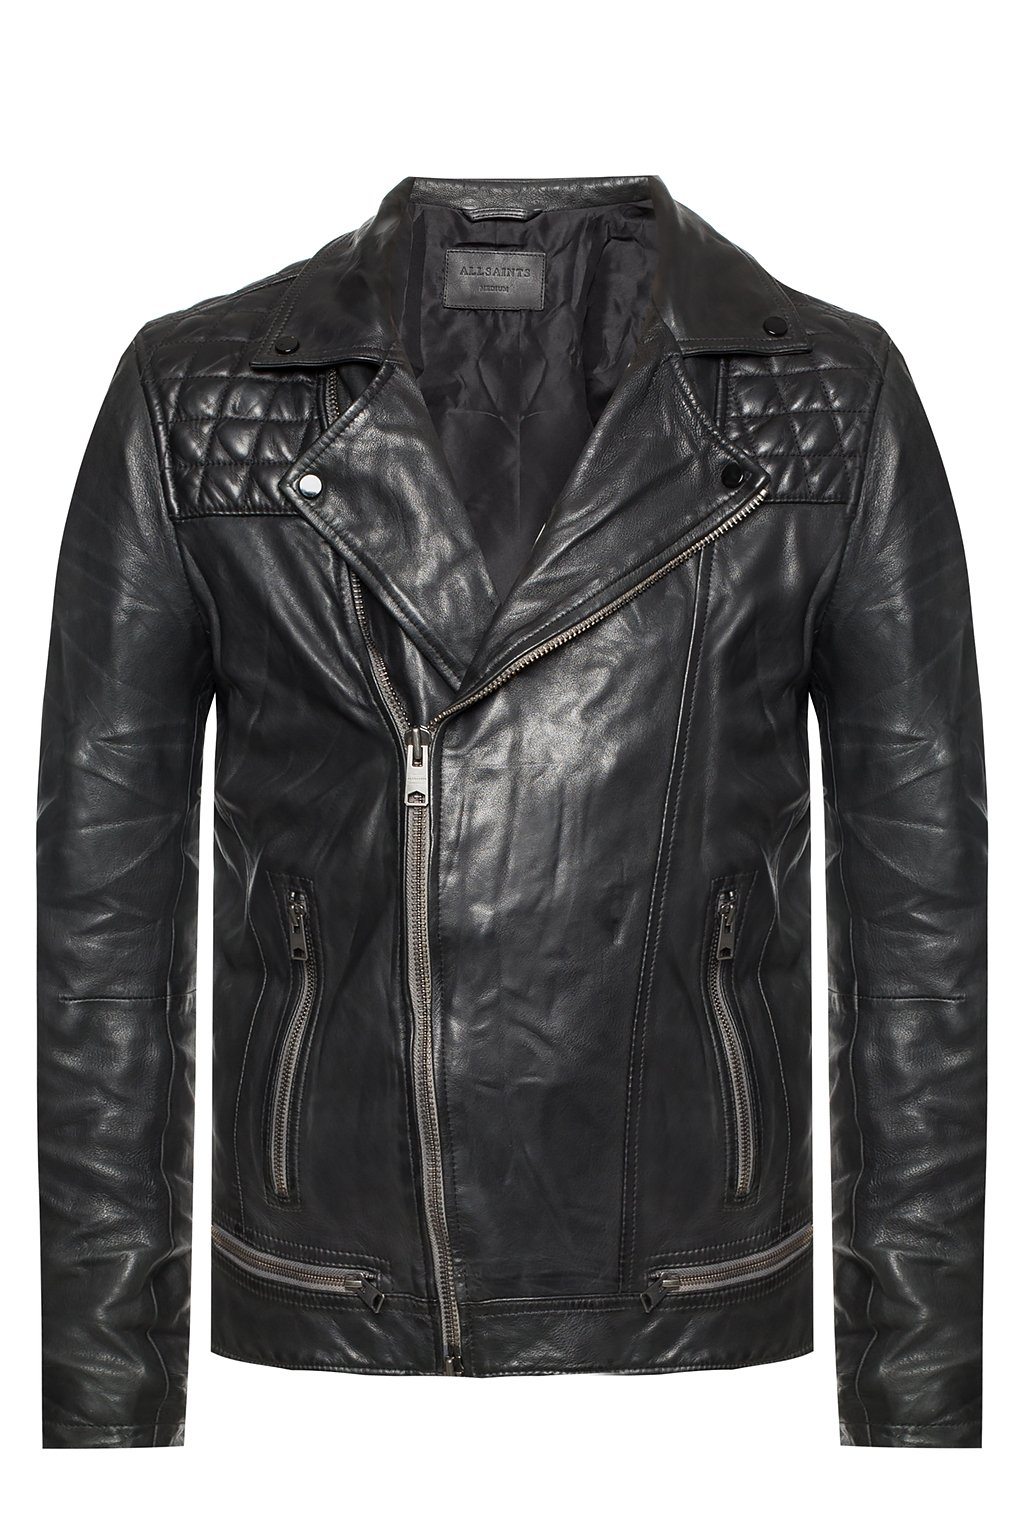 all saints conroy leather jacket